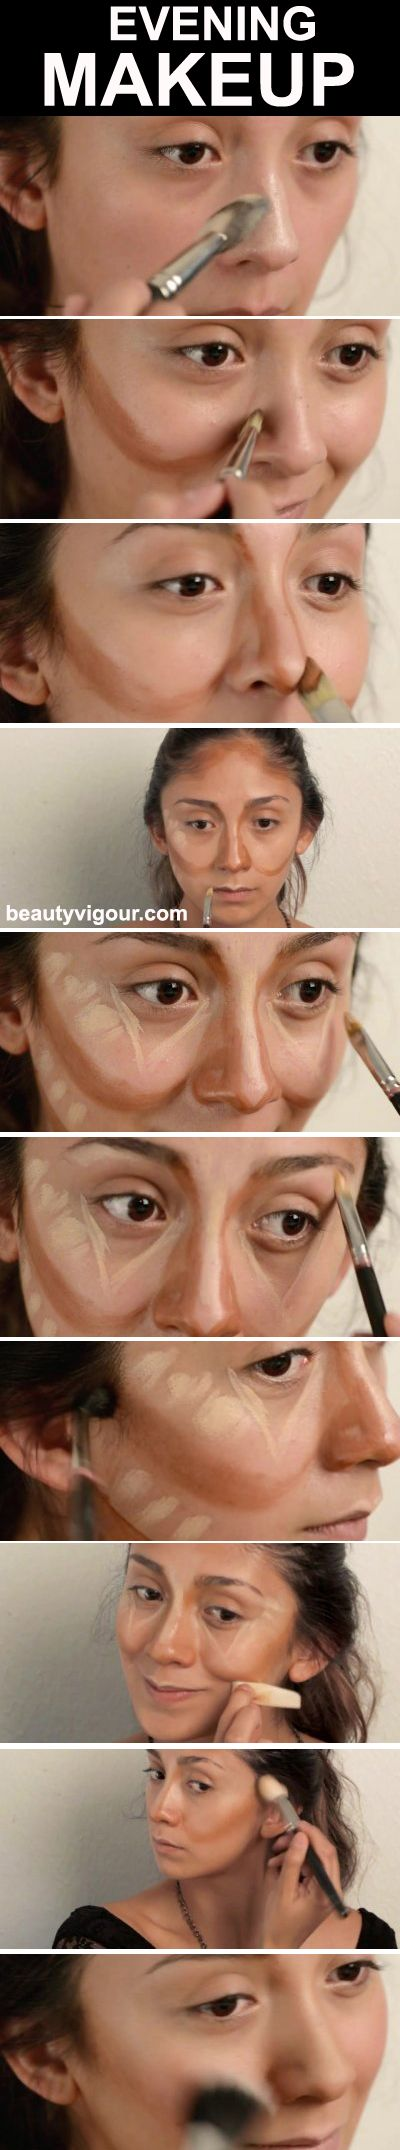 Step by Step for an Evening Make-Up